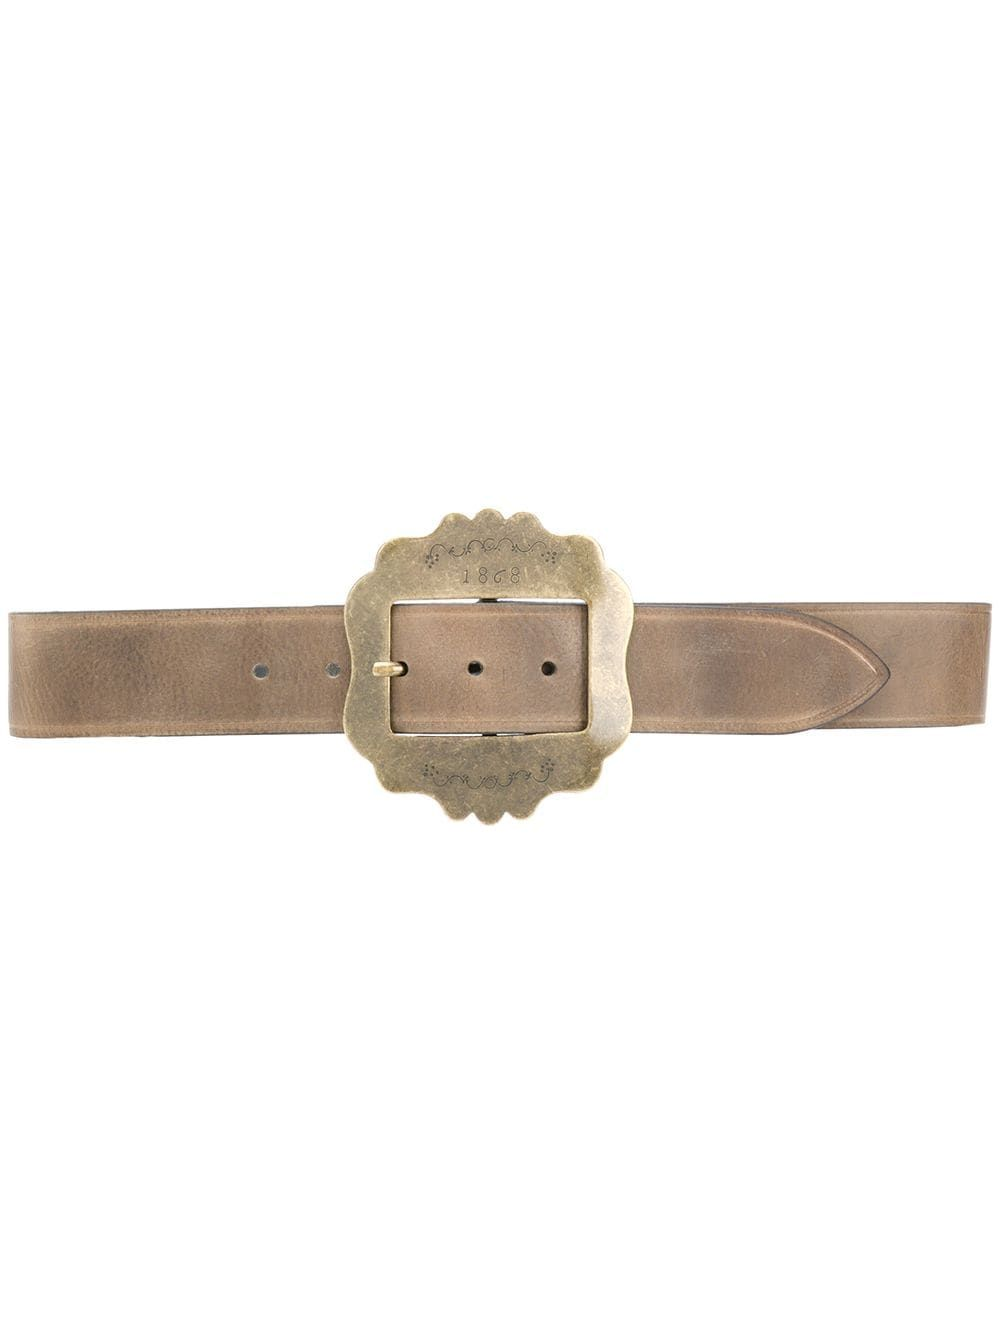 Isabel Marant ISABEL MARANT WOMEN'S BEIGE LEATHER BELT